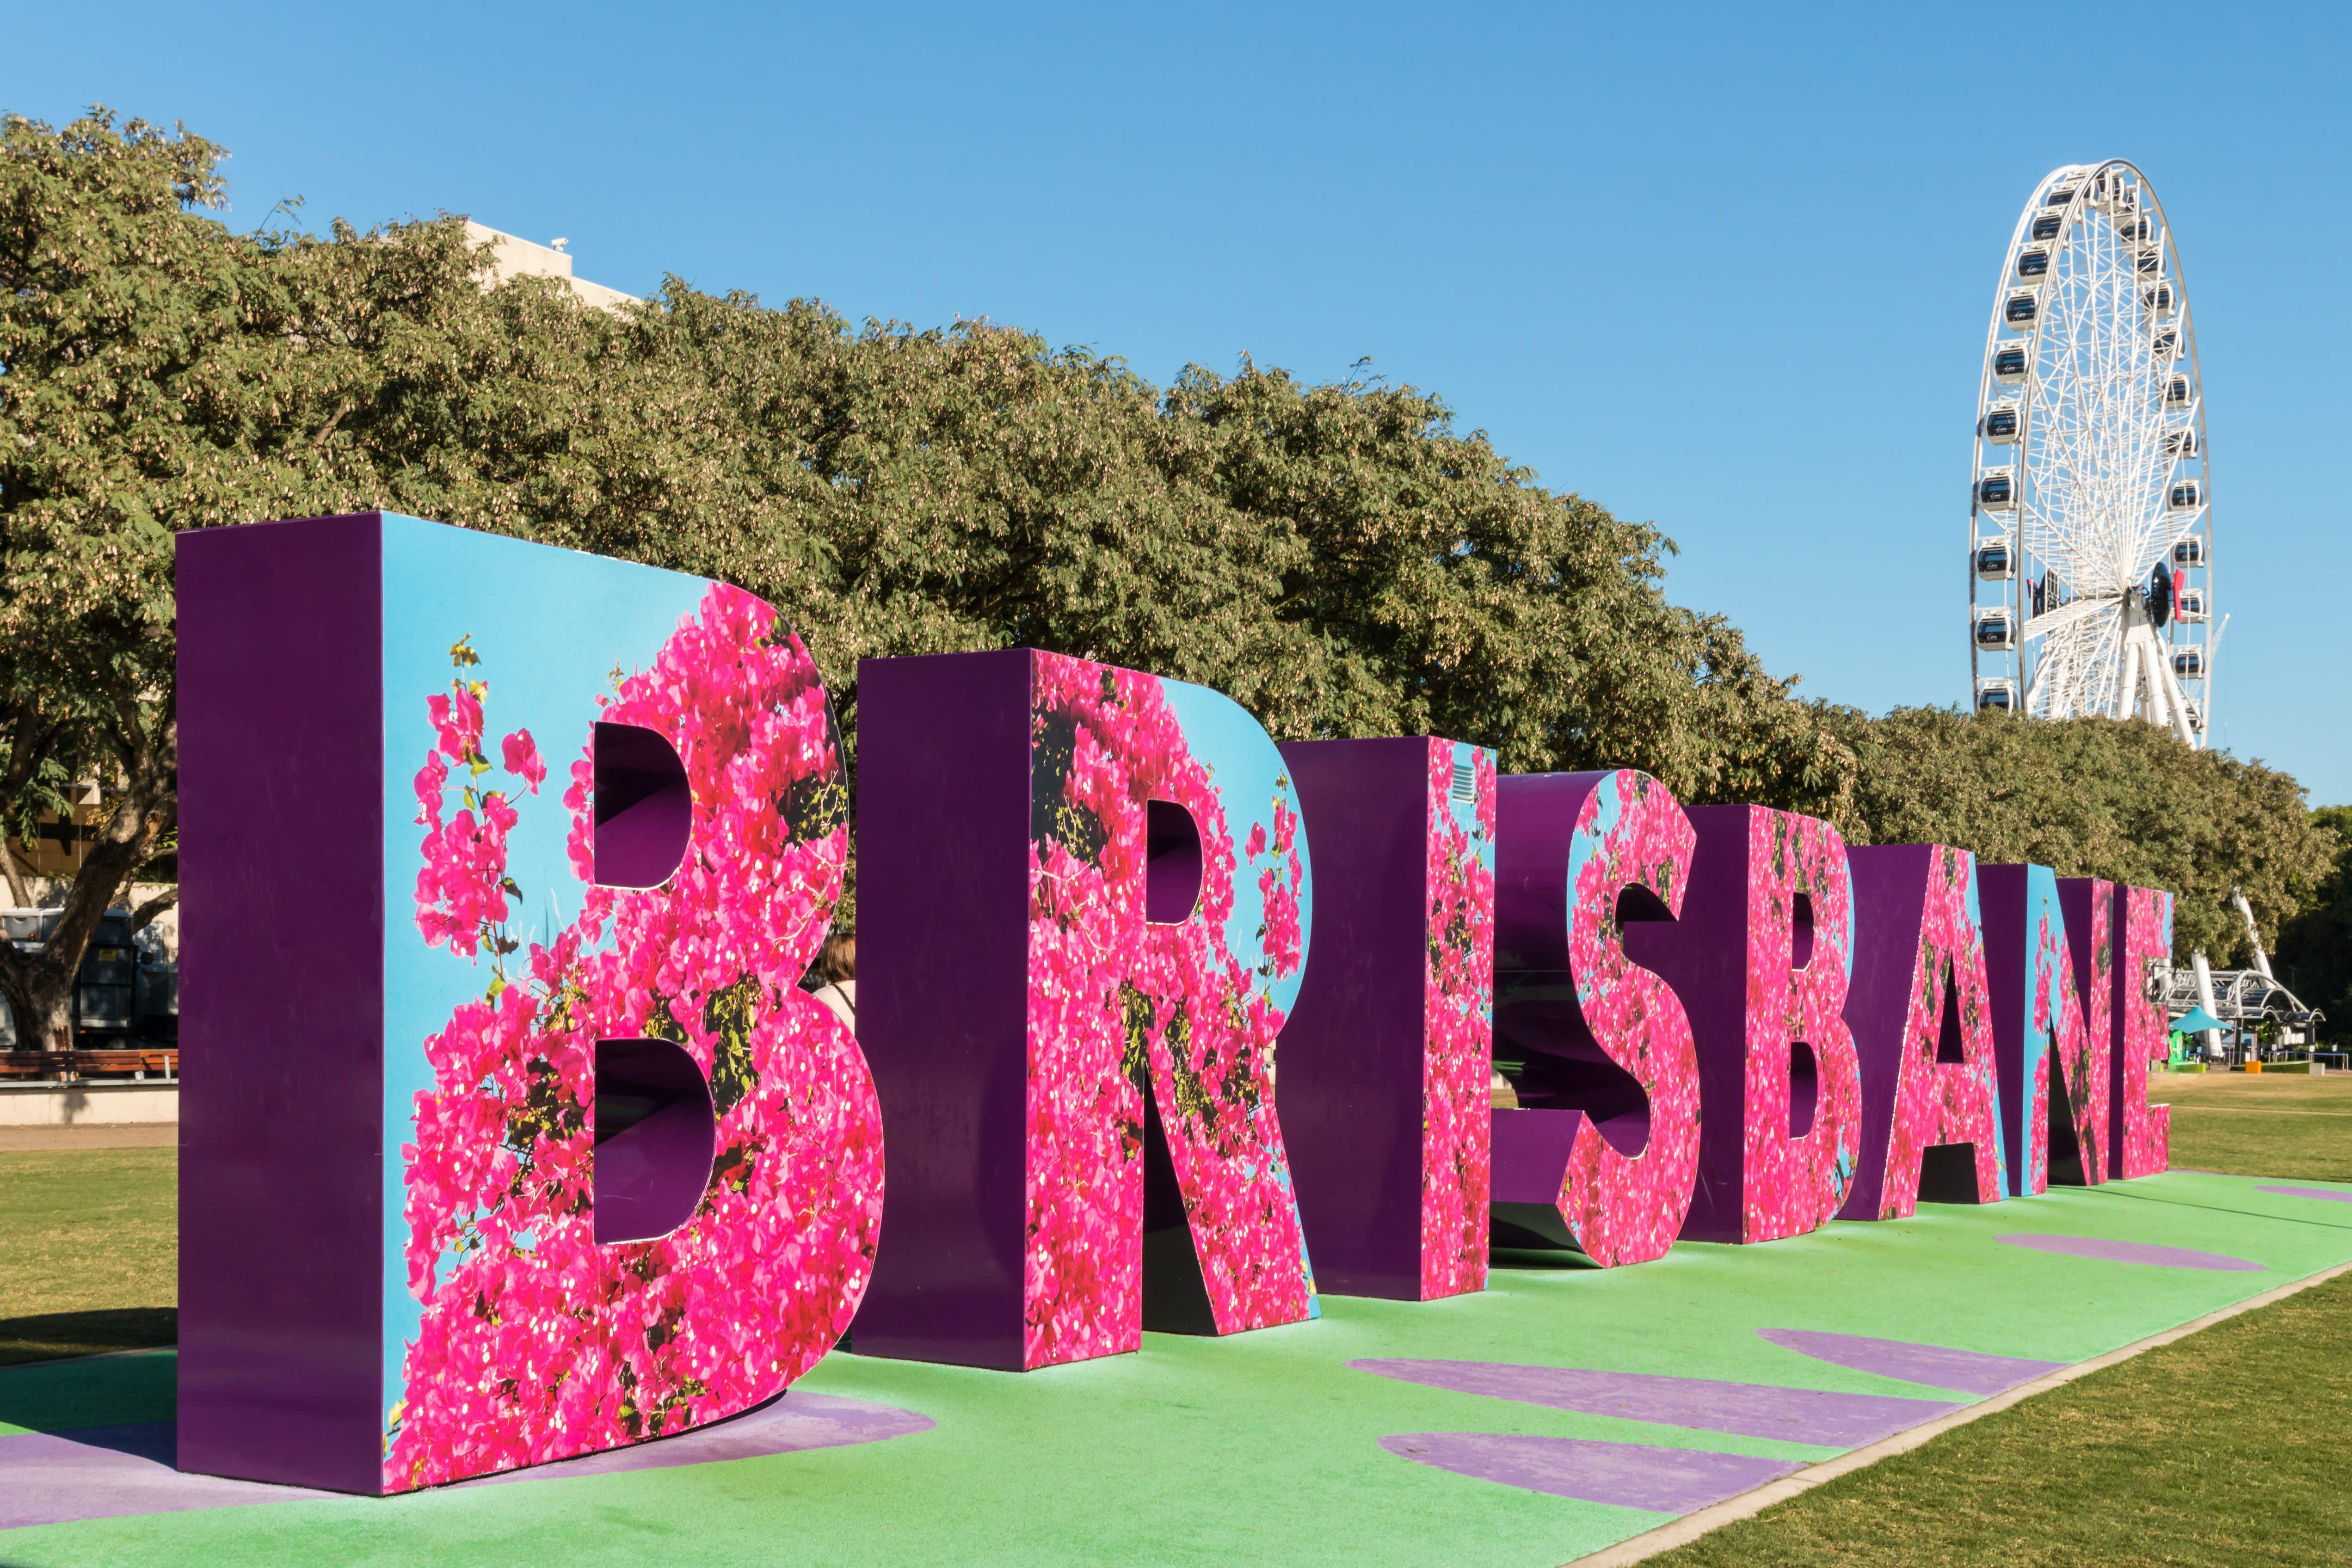 Best free things to do in Brisbane